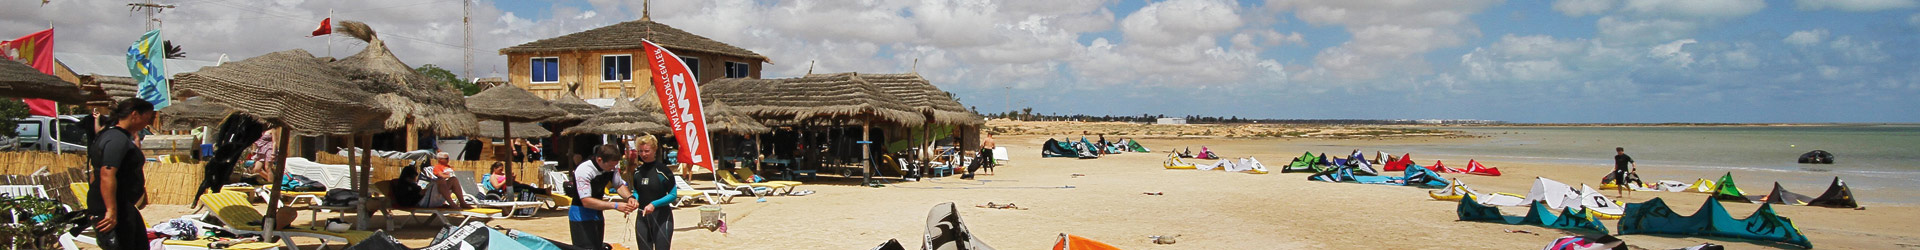 1920×250-wassersport-station-djerba-1